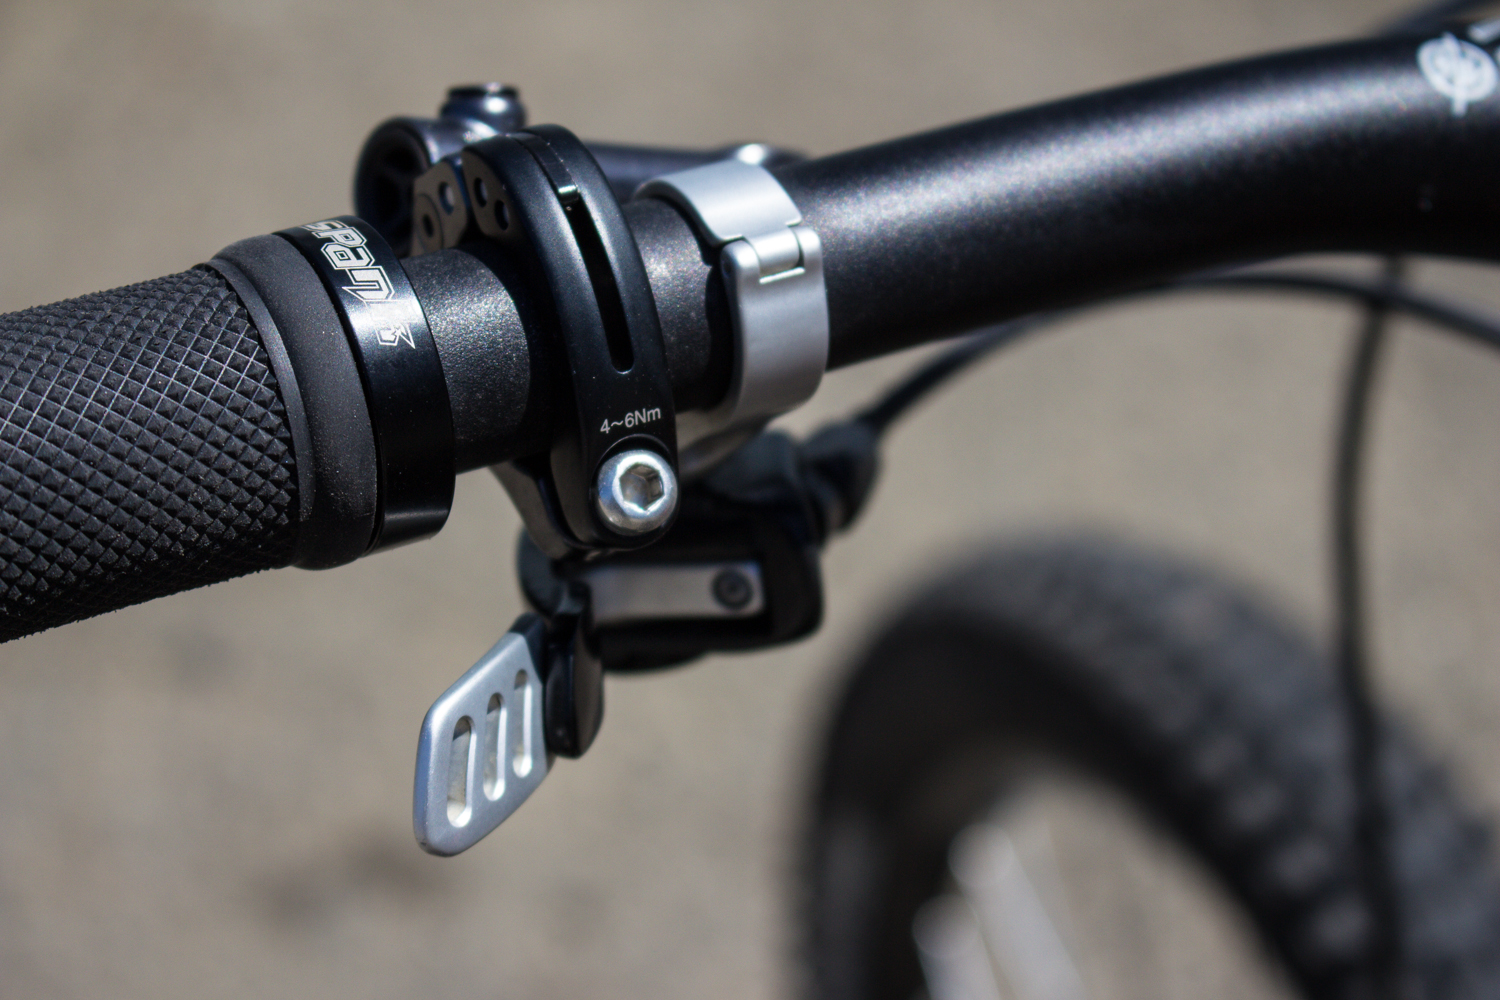 Fox D.O.S.S dropper post and Shimano XTR Race brake levers